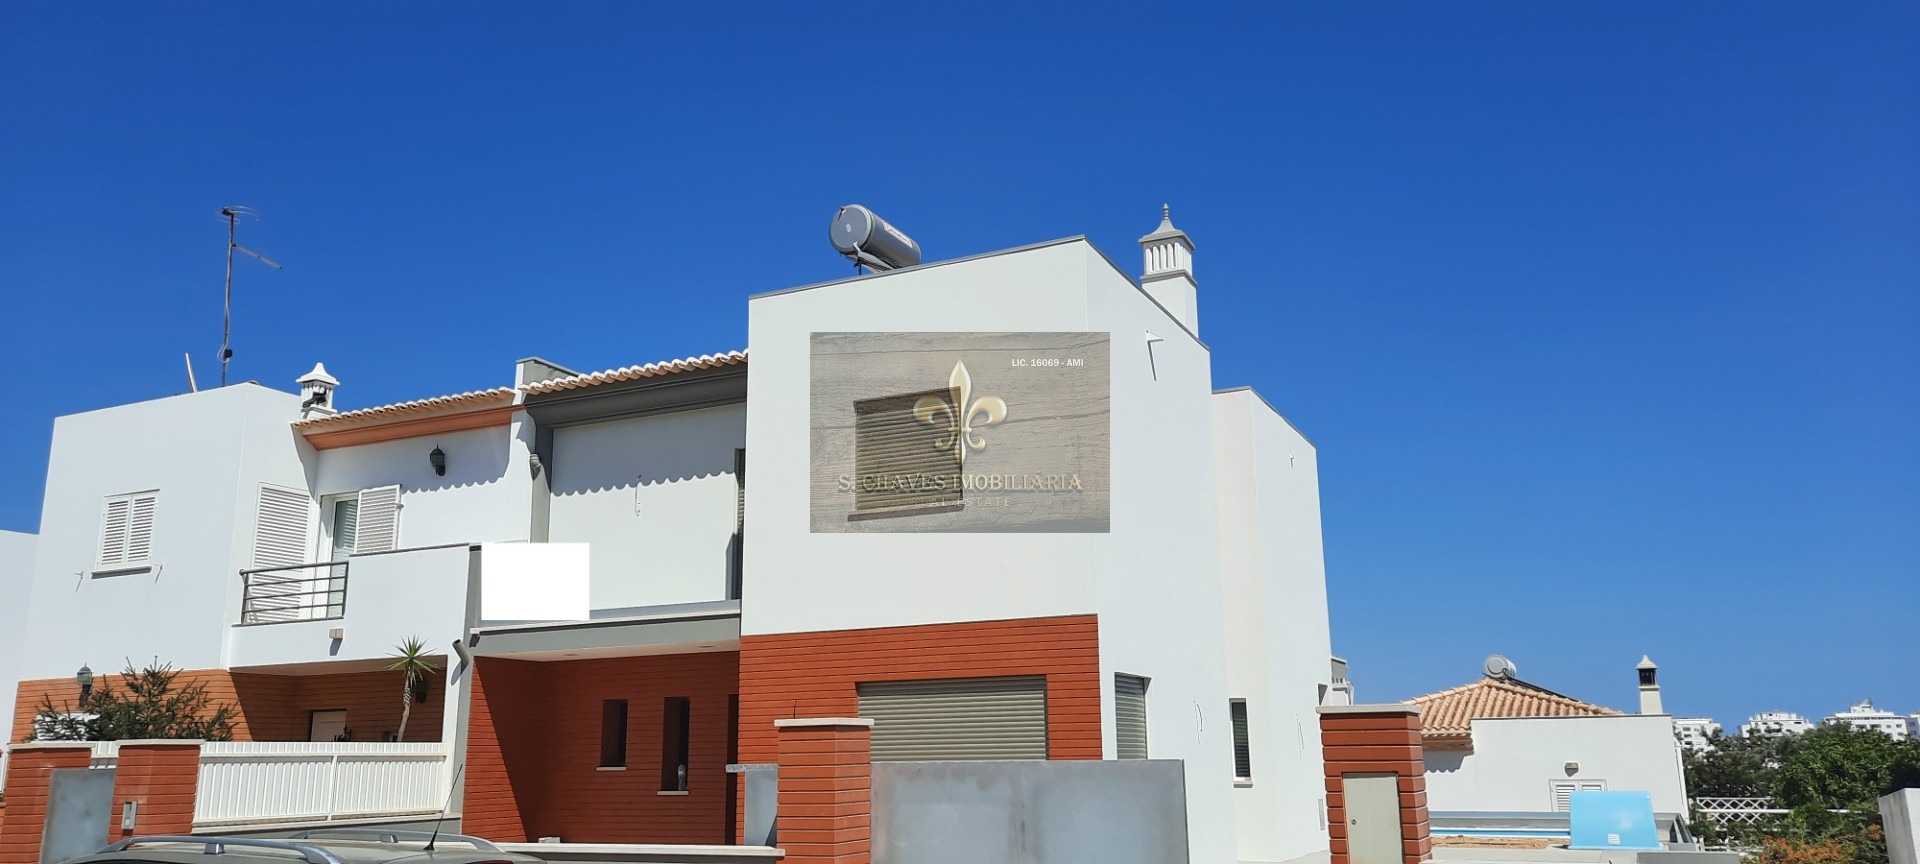 4 bedroom villa with pool and garage in Albufeira